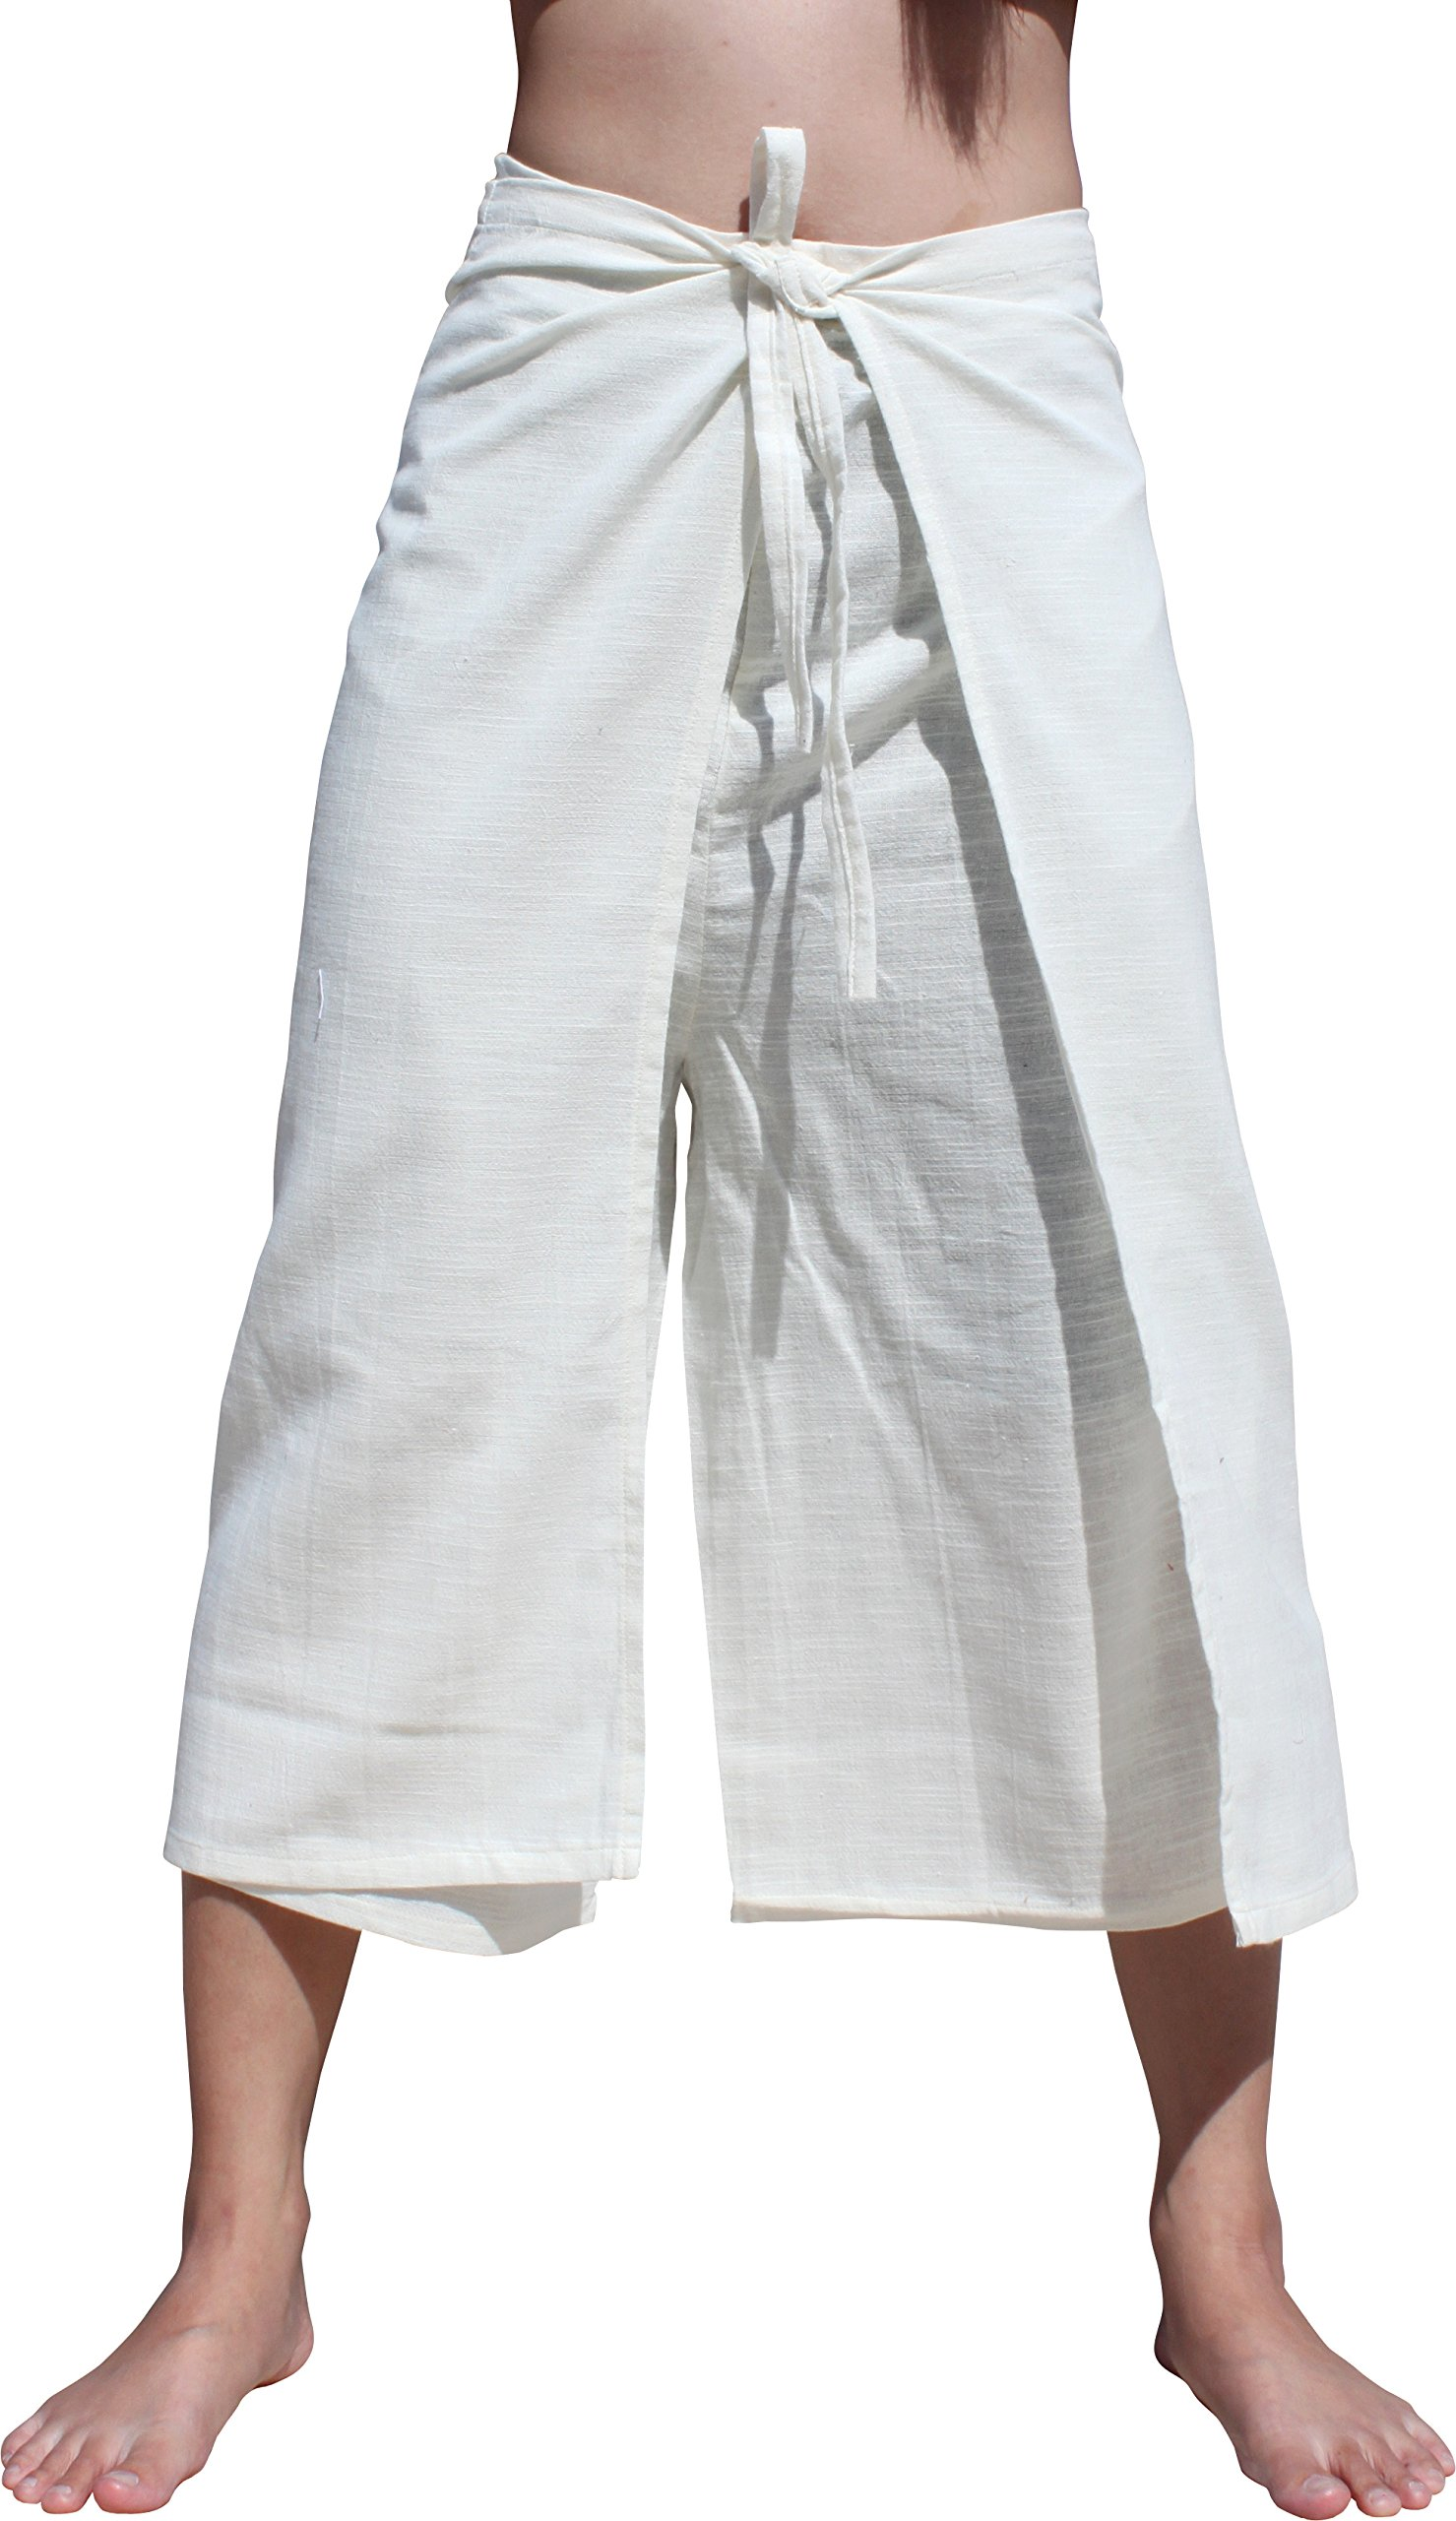 RaanPahMuang Drive In Wrap Pants In Summer Plain Mixed Cotton, Medium, Yeaphai Cotton - White by RaanPahMuang